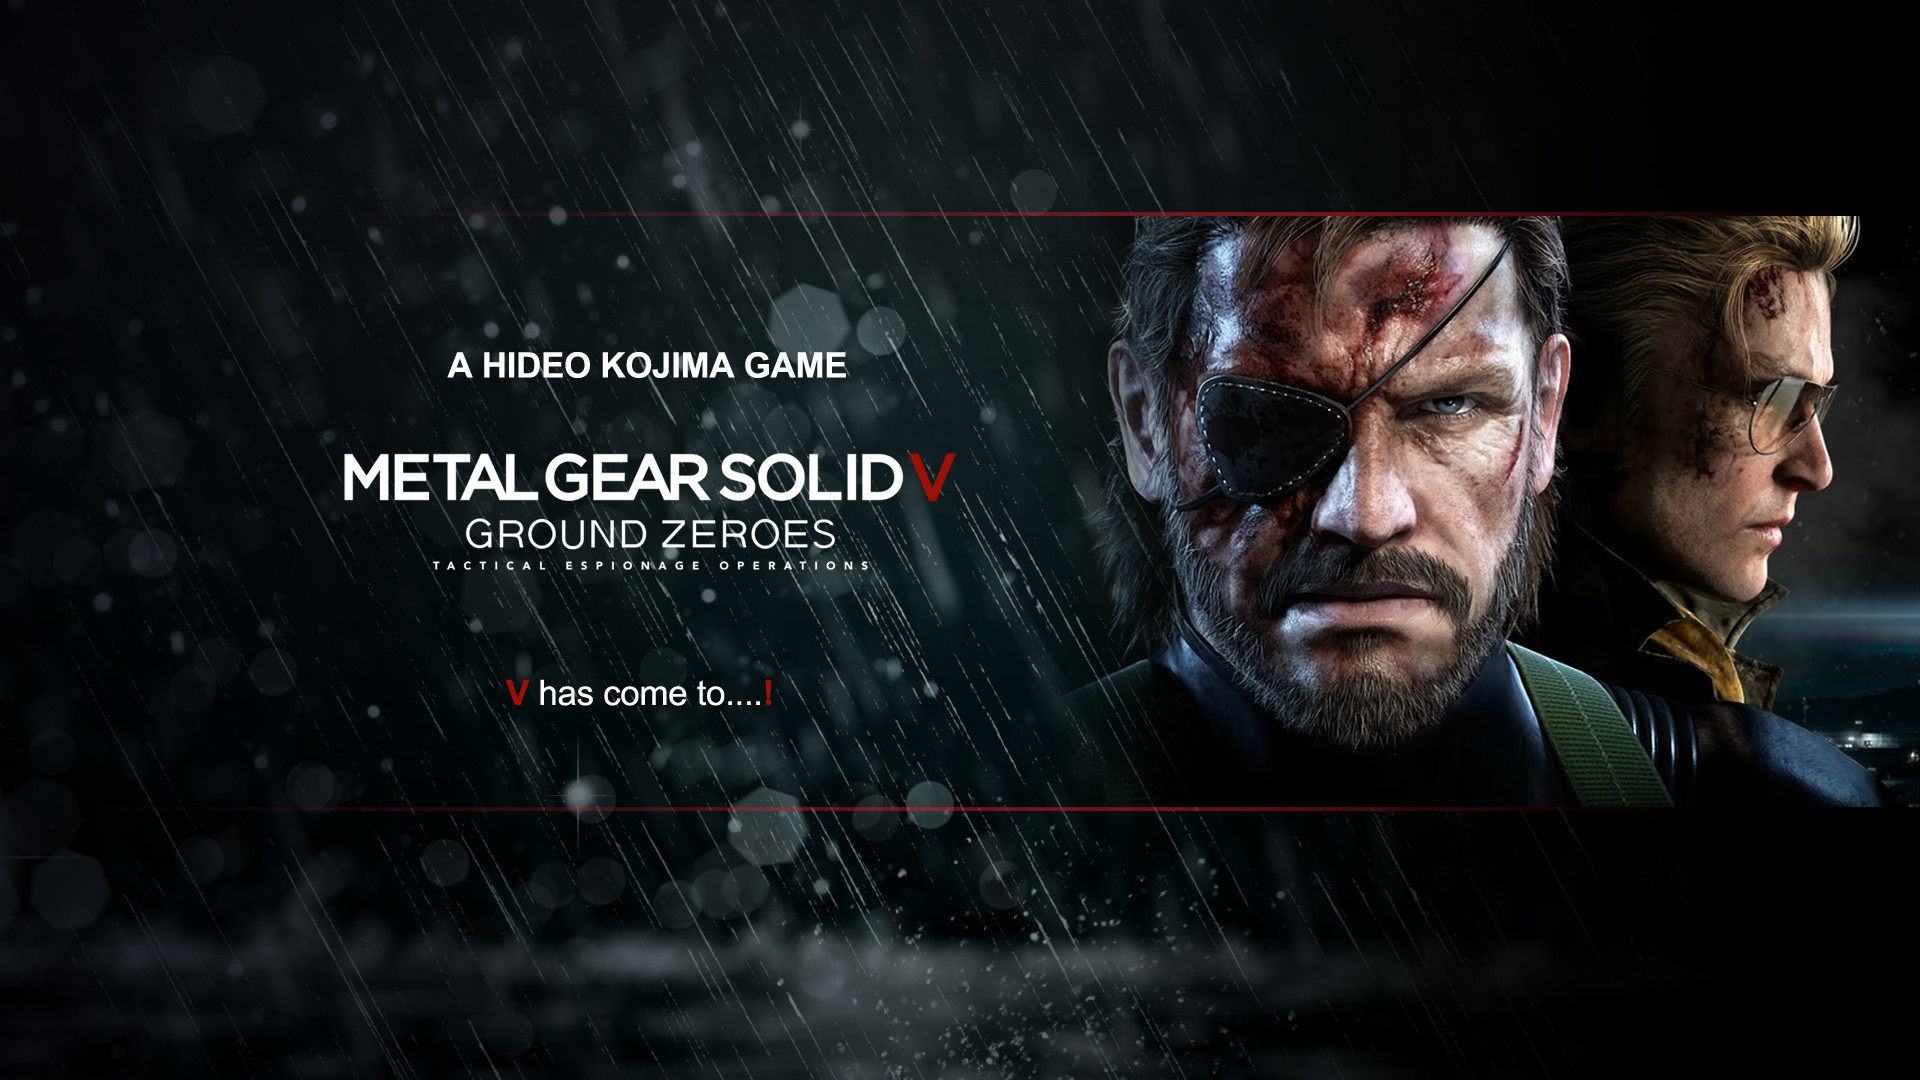 Quiet mgs wallpaper 88 images - Mgs 5 wallpaper ...